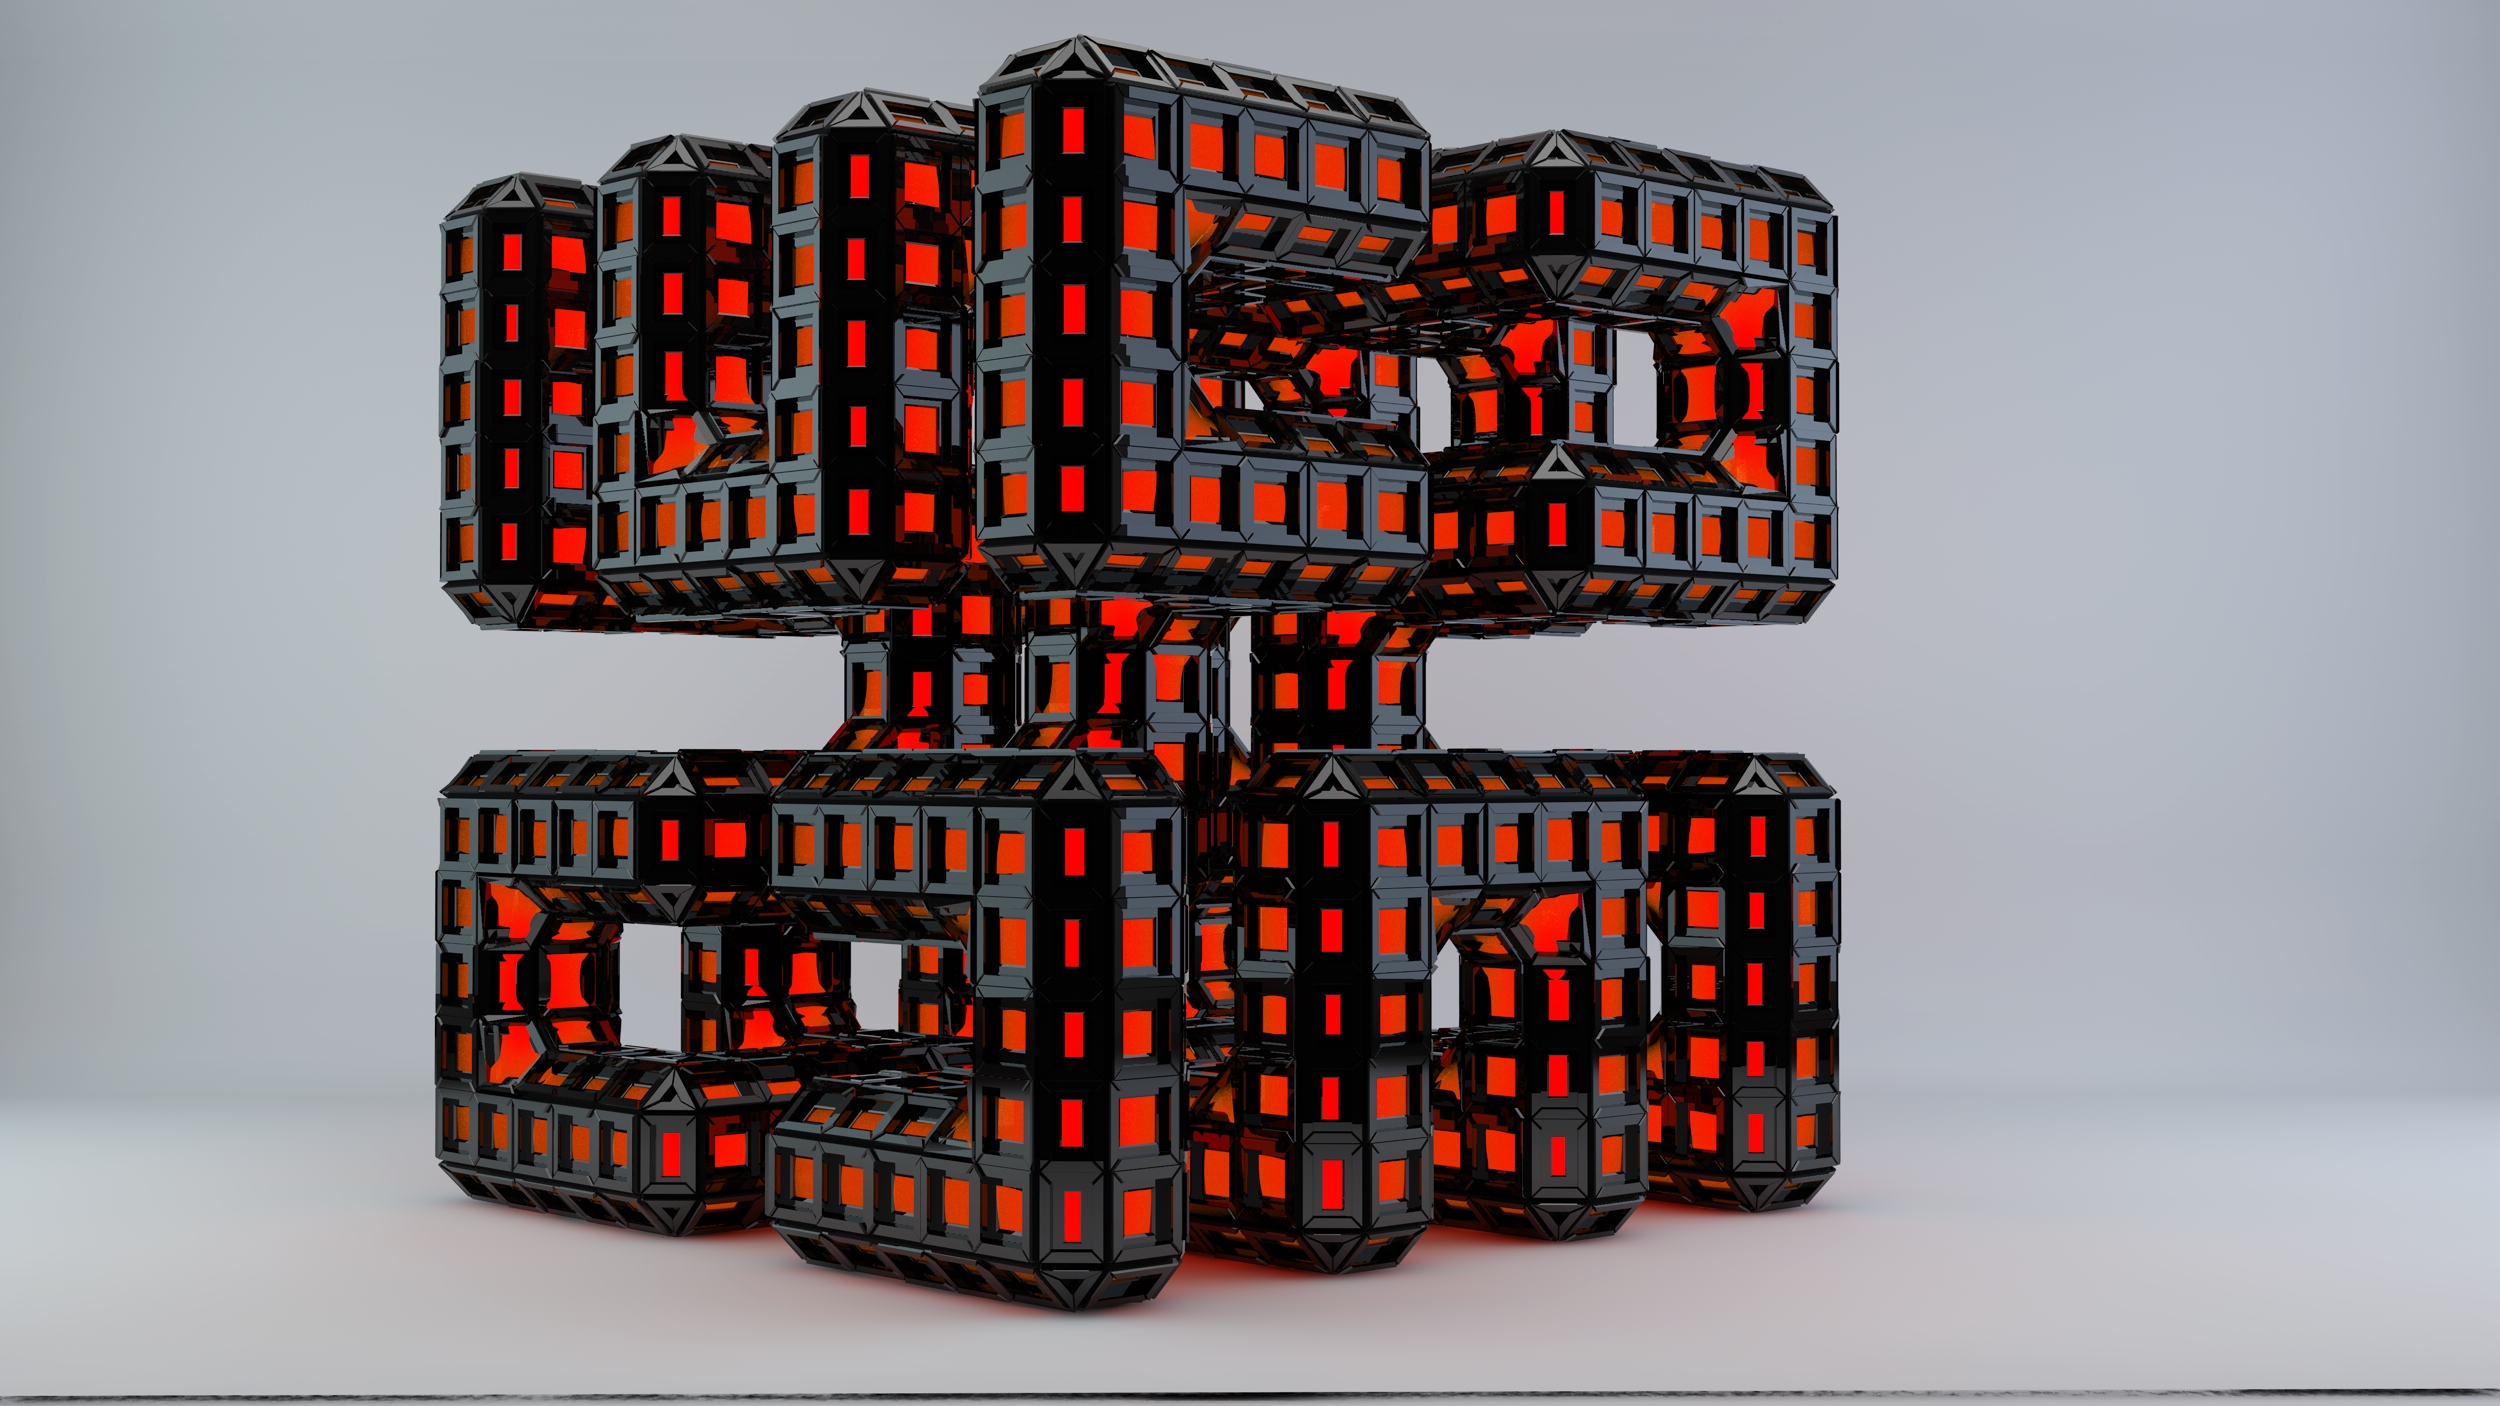 Wings 3D Hilbert Cube by nic022